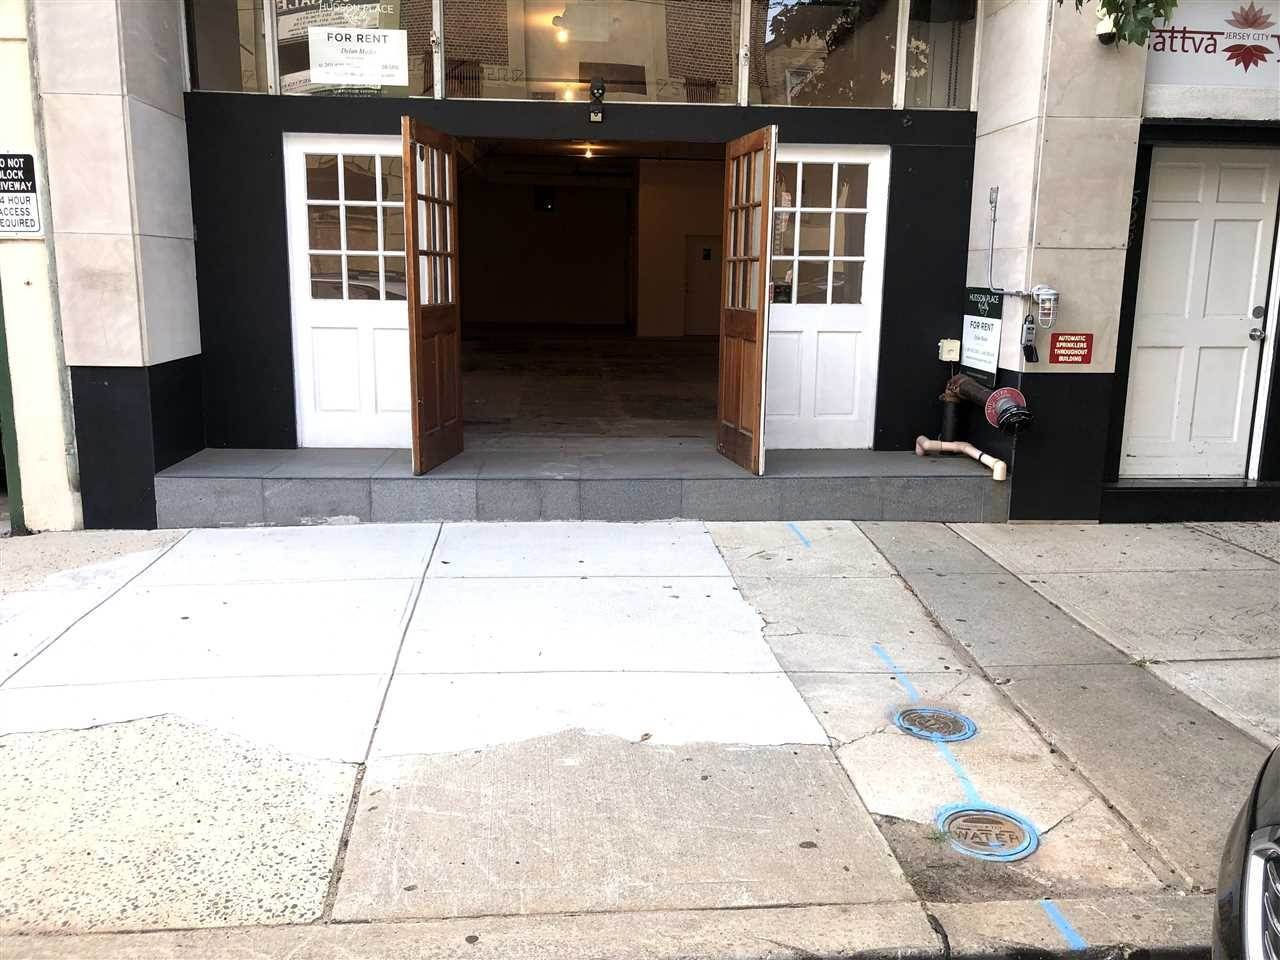 8. Retail for Rent at 523 PALISADE AVENUE #1 Jersey City, New Jersey, 07302 United States